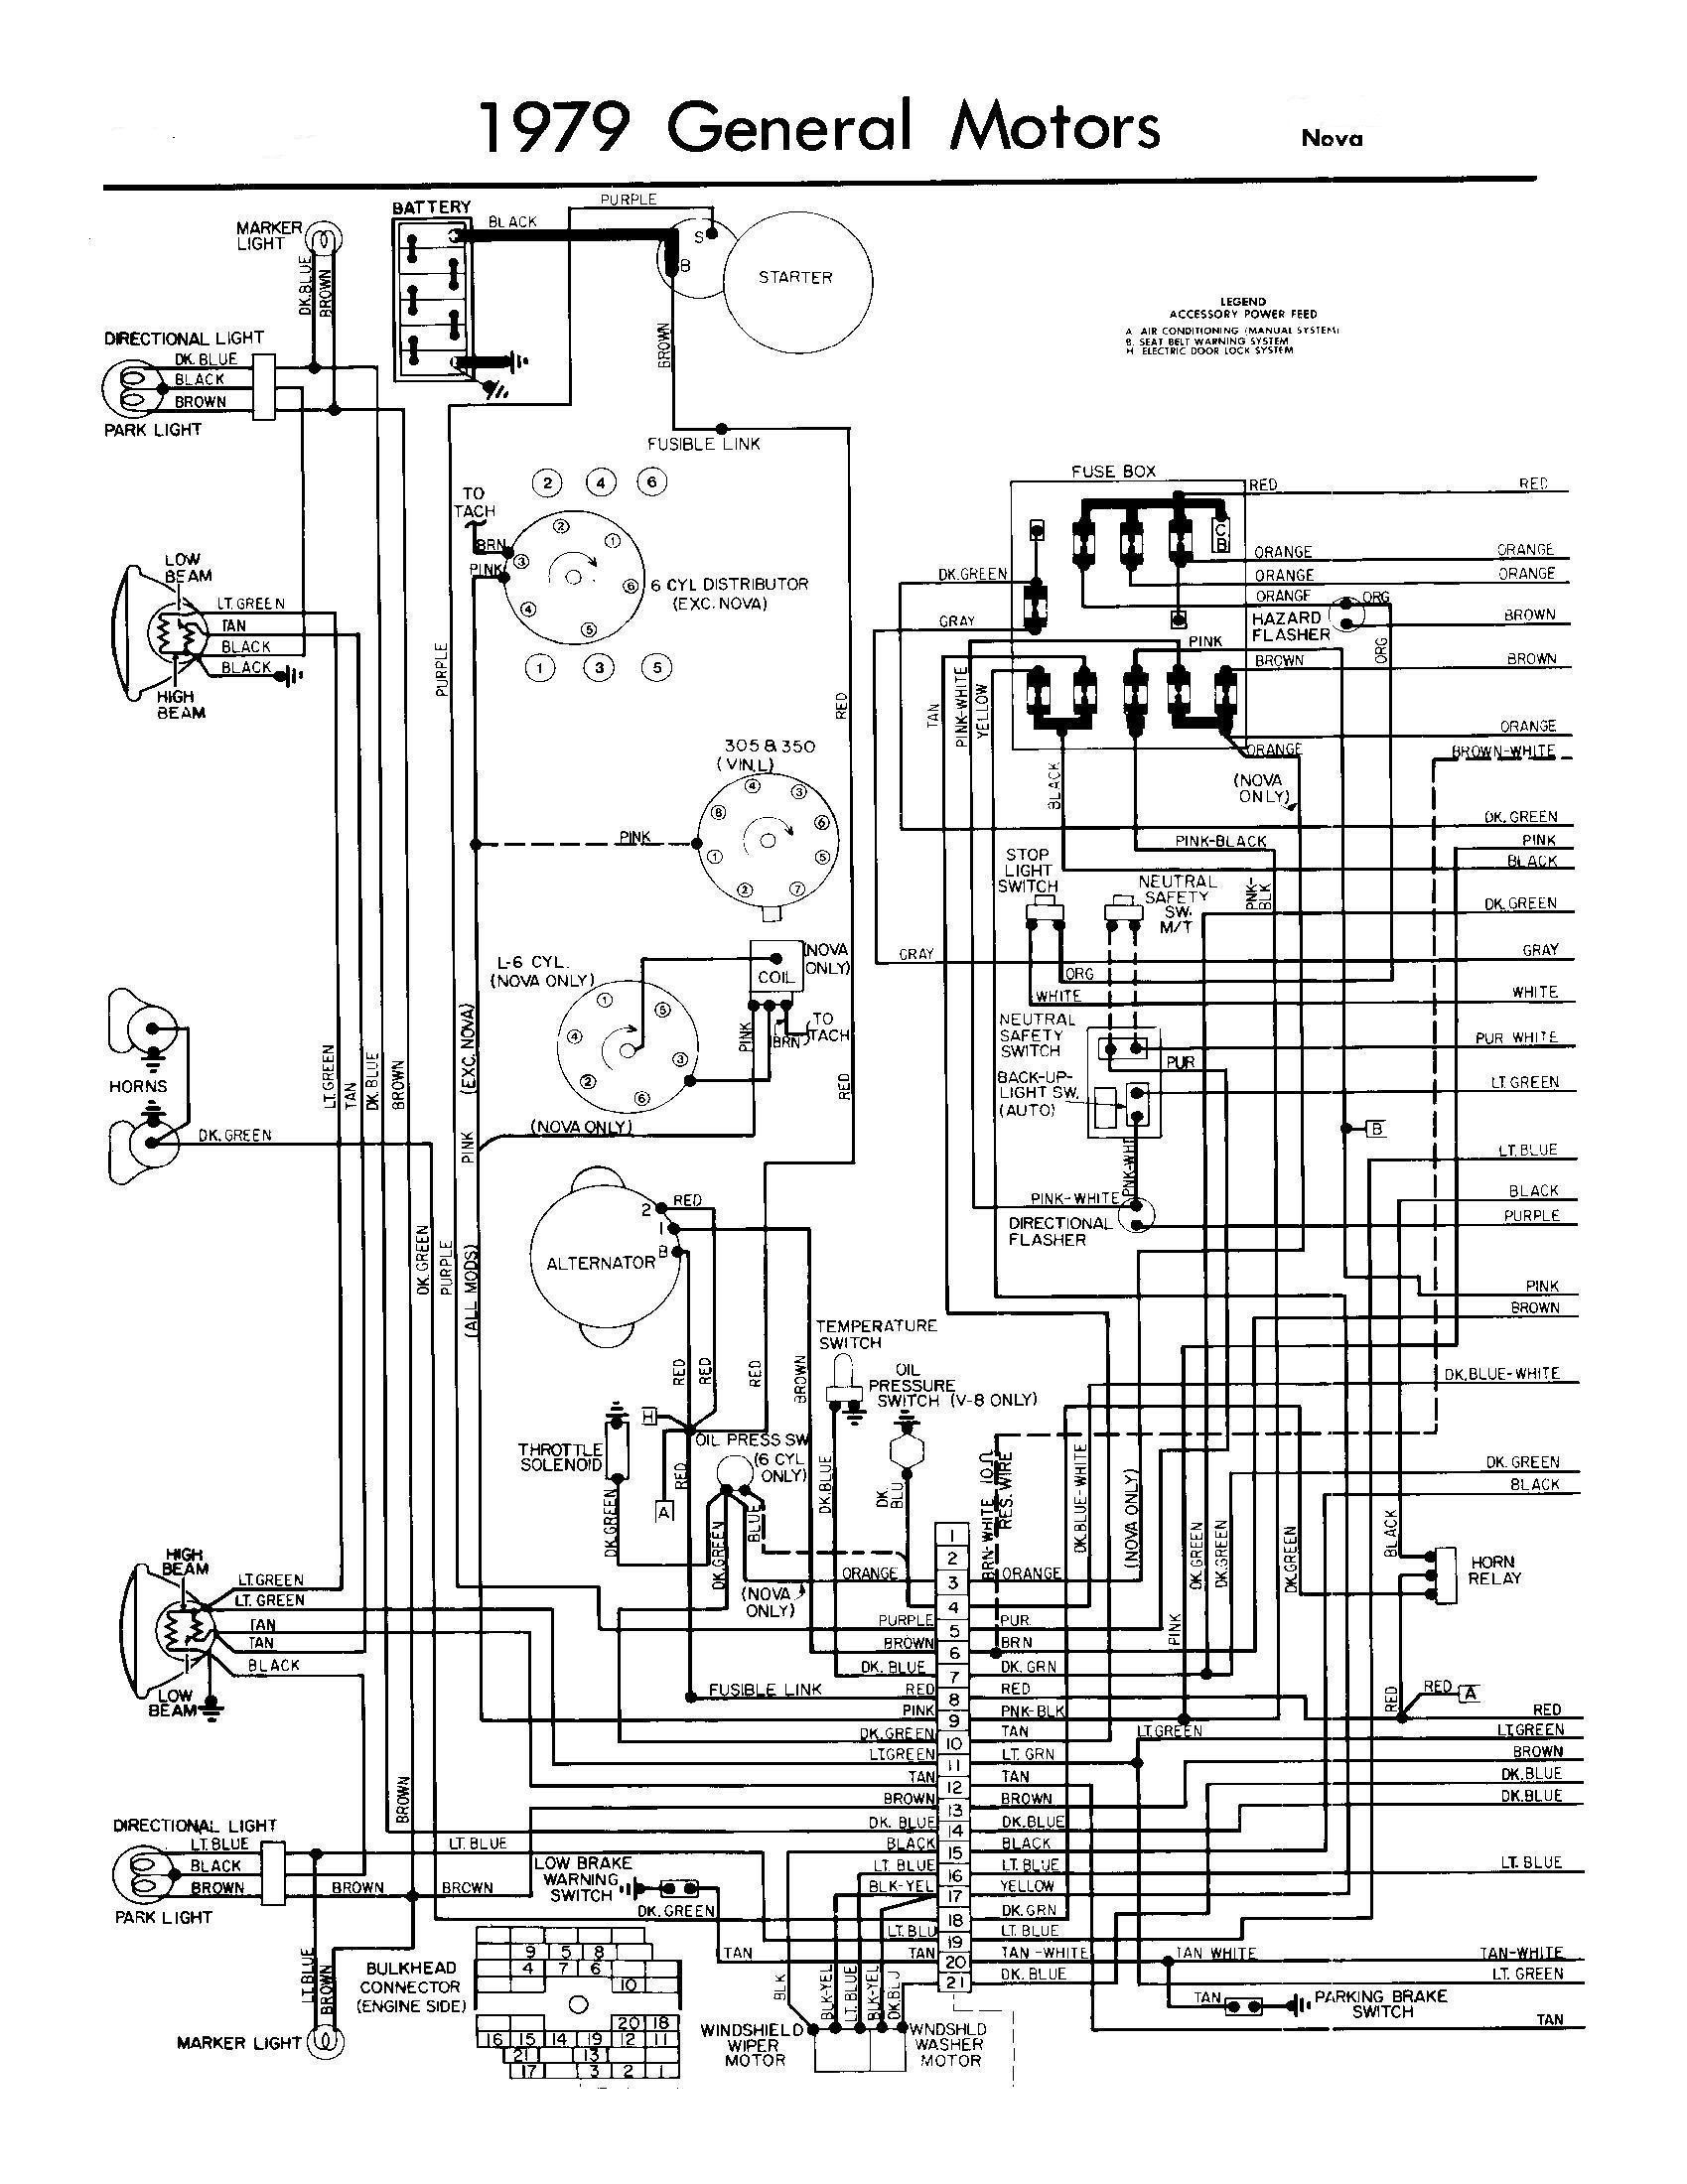 1997 ford l8000 wiring diagram wiring diagrams schema1997 ford l8000 wiring diagram wiring library ford turn signal switch diagram 1977 ford l8000 wiring